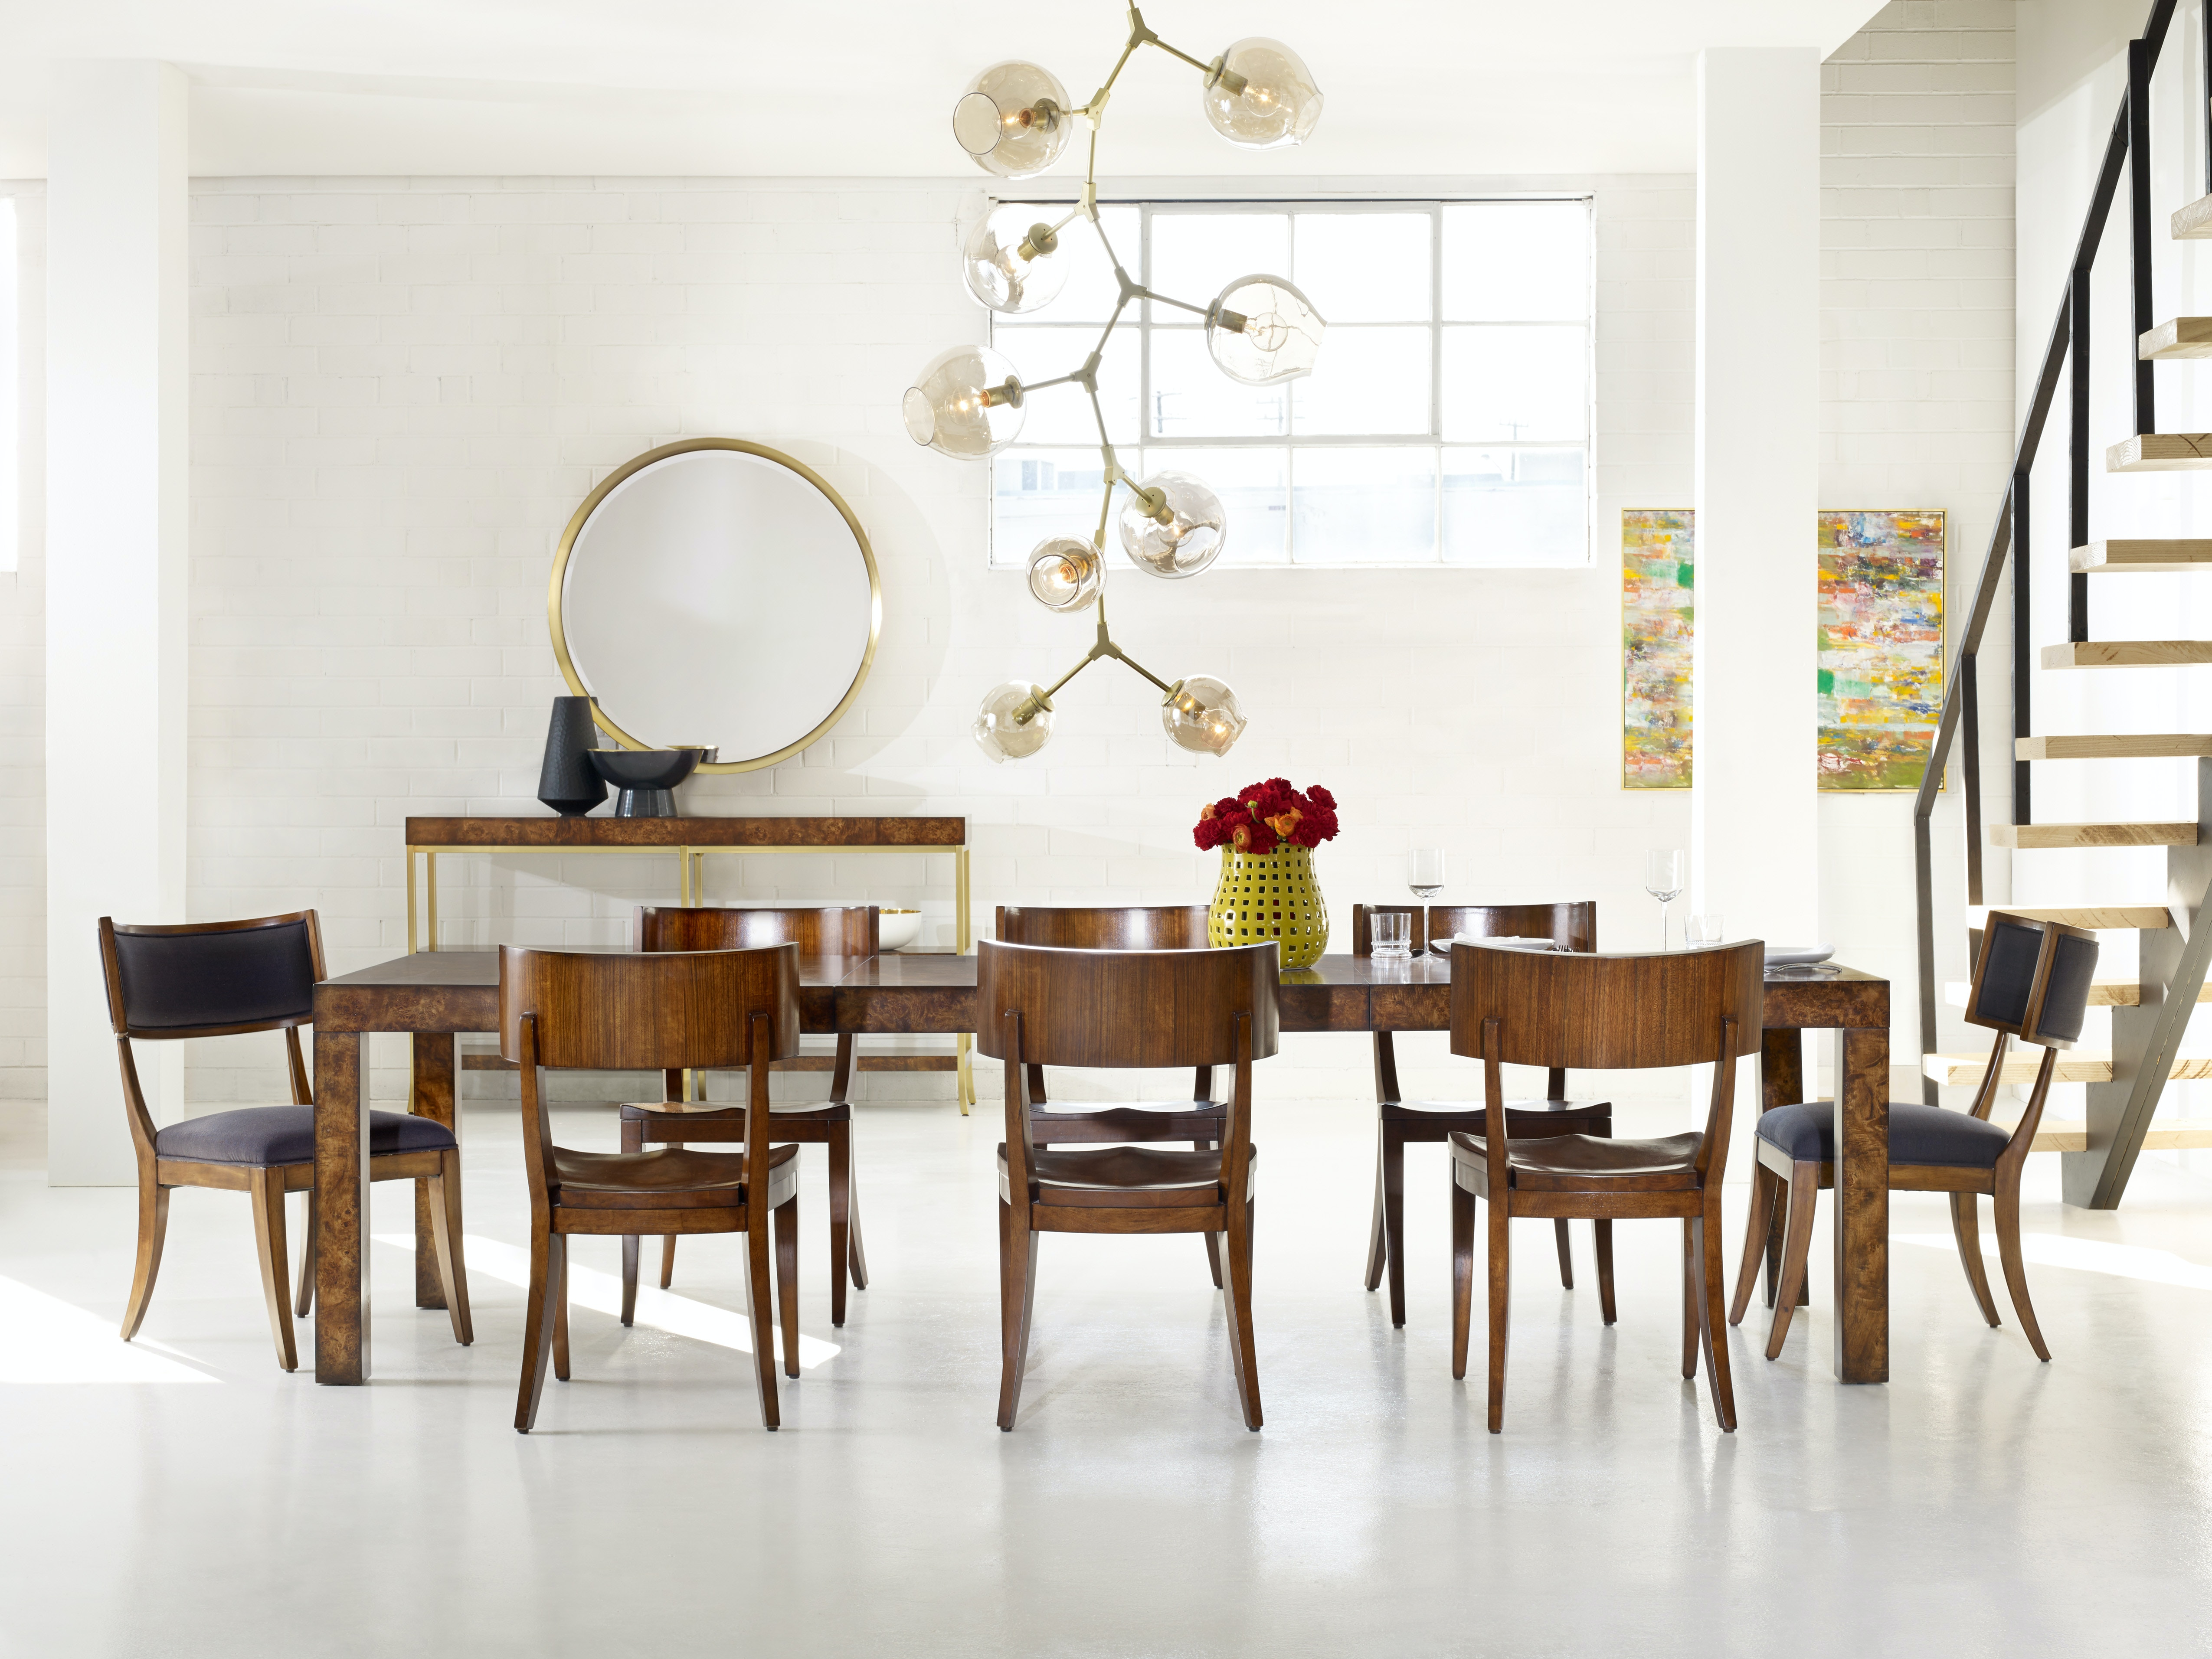 VIRTUAL SHOWROOM DINING LONG BOARD DINING ROOM BY CYNTHIA ROWLEY  LONGBOARDDR From Walter E. Smithe